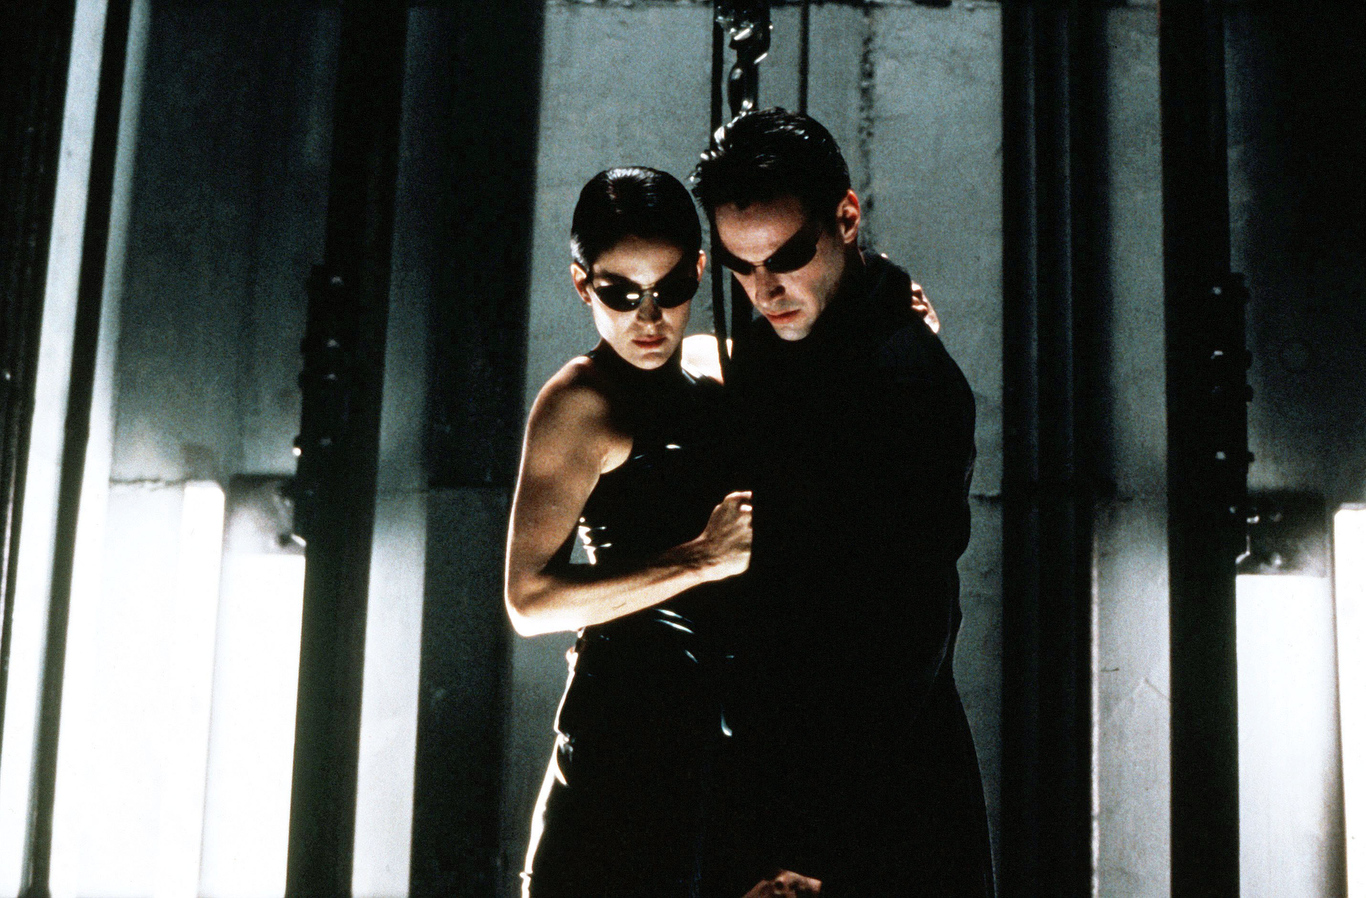 Editorial use only. No book cover usage.Mandatory Credit: Photo by Warner Bros/Village Roadshow Pictures/Kobal/Shutterstock (5886046ap) Carrie-Anne Moss, Keanu Reeves The Matrix - 1999 Director: Andy & Larry Wachowski Warner Bros/Village Roadshow Pictures USA Scene Still Matrix (La Matrice)